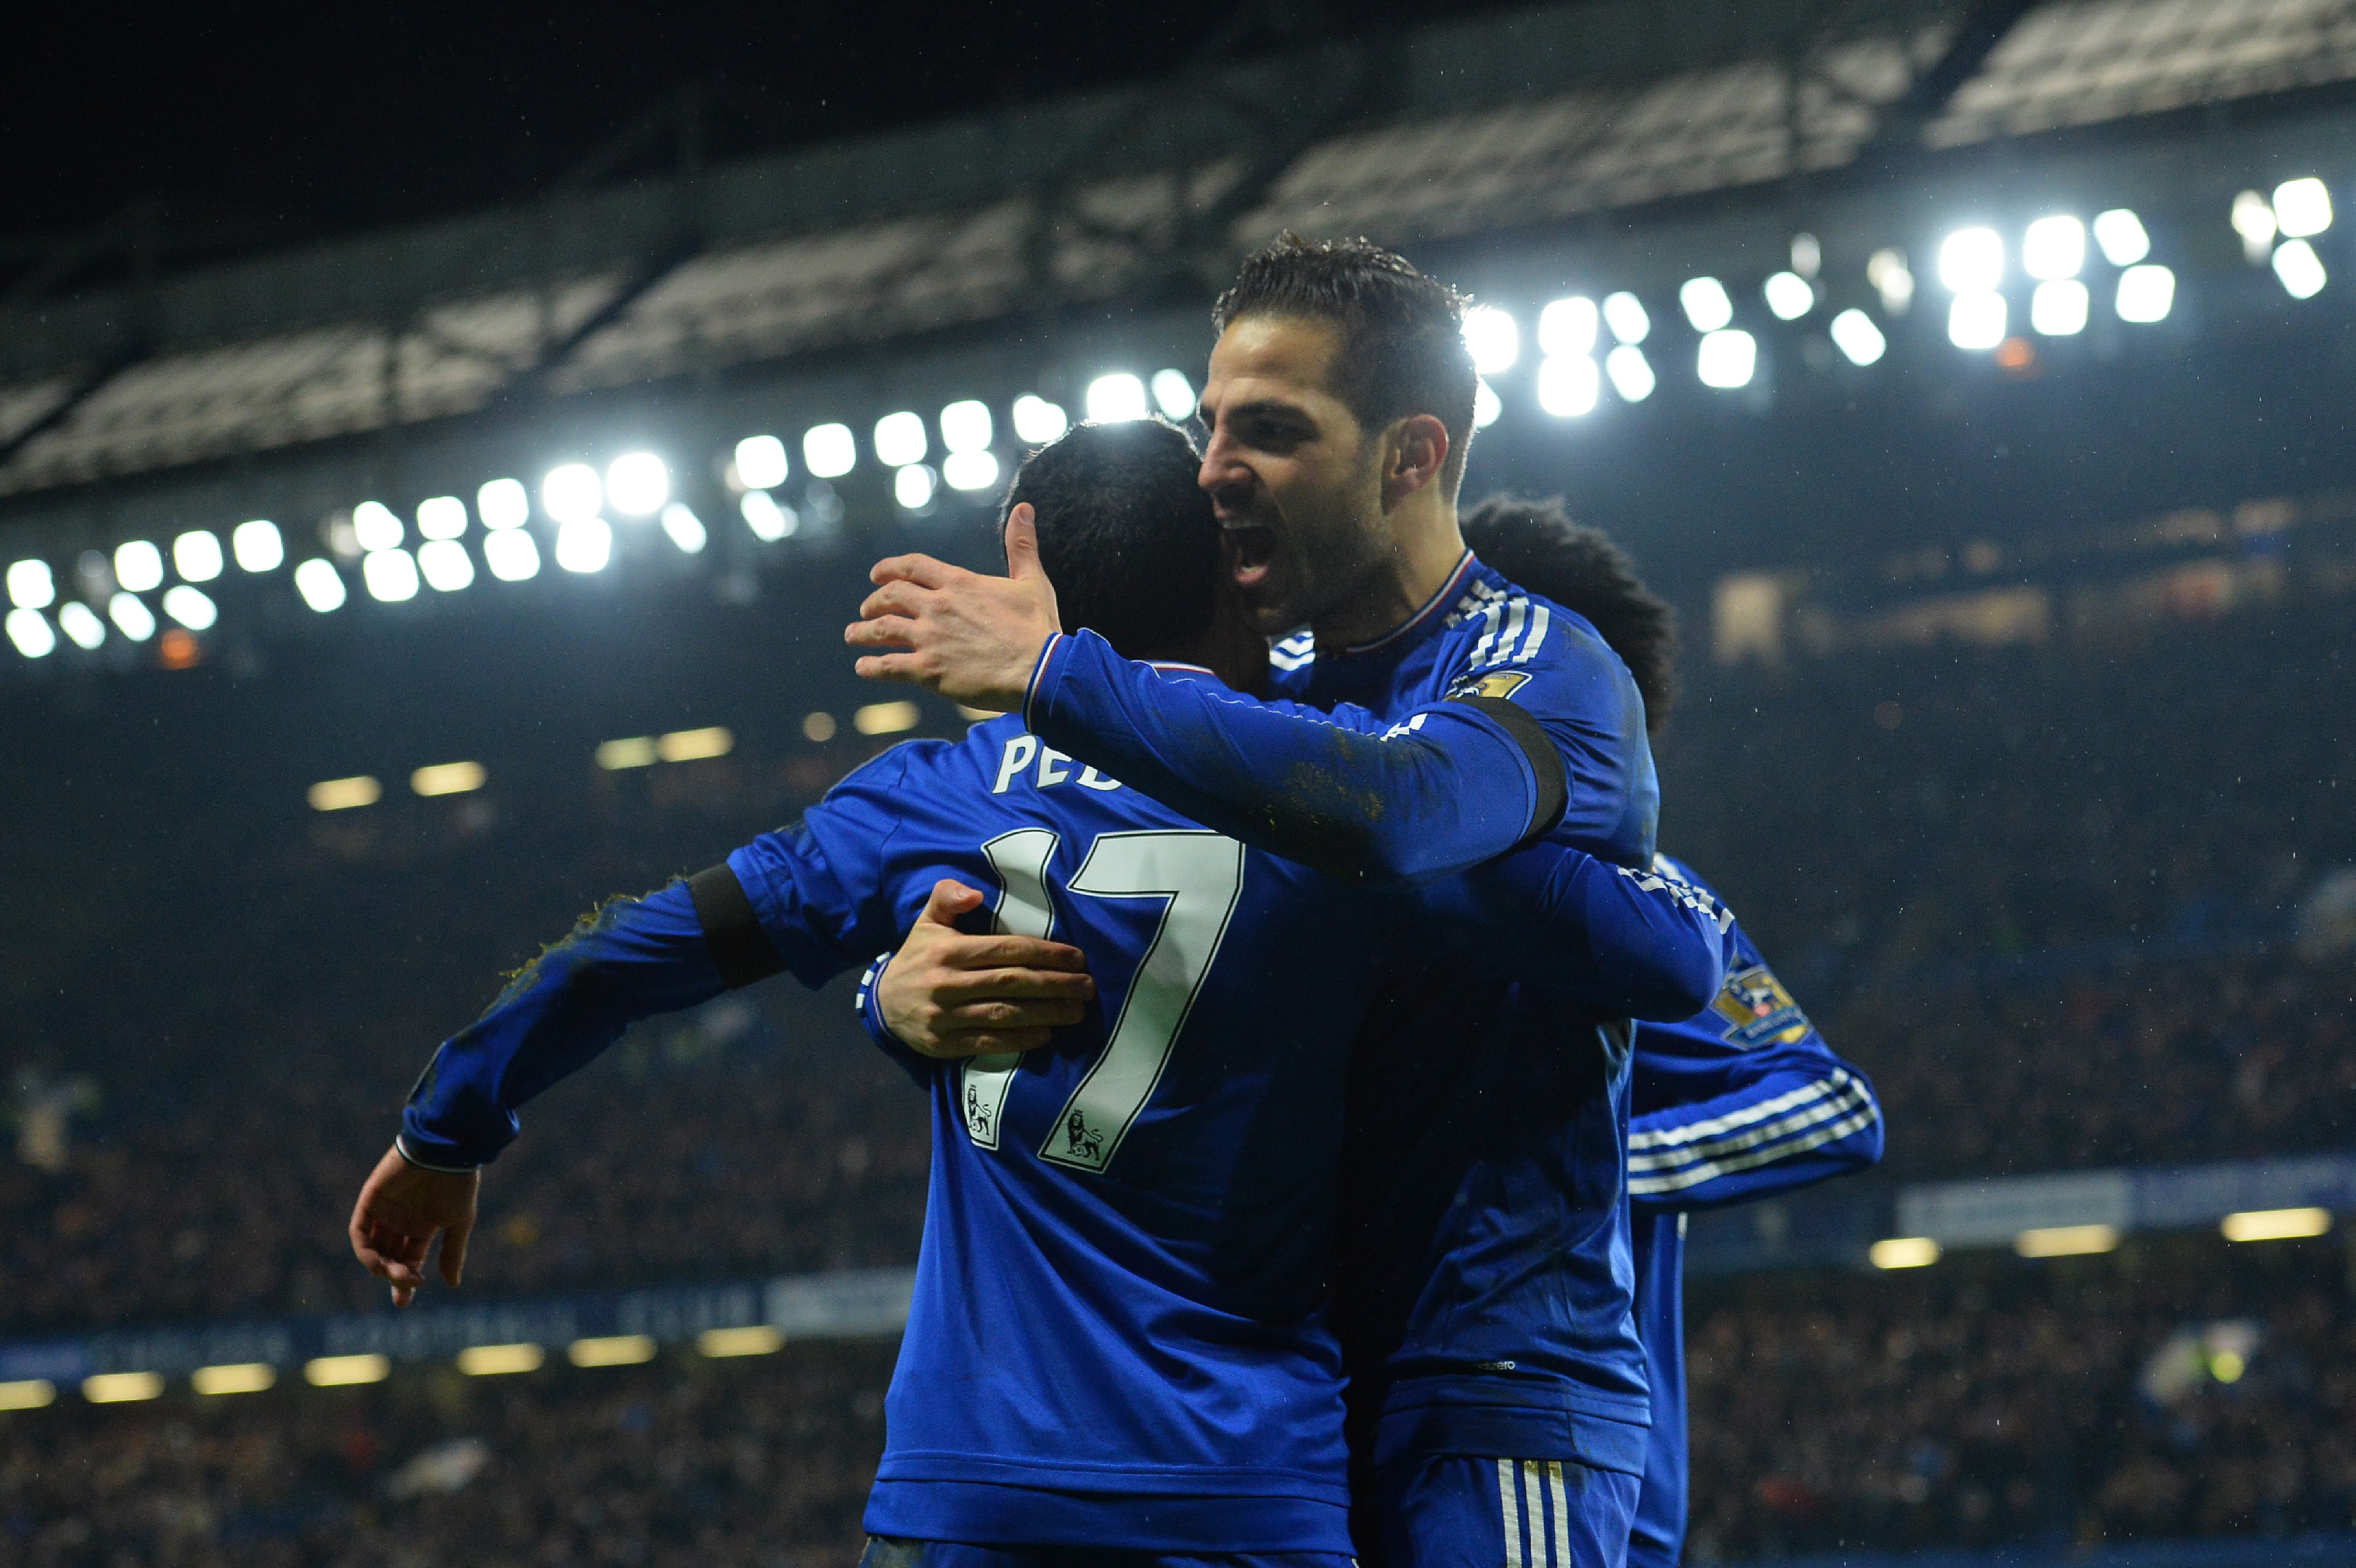 Chelsea's Spanish midfielder Pedro (L) celebrates scoring his team's second goal with Chelsea's Spanish midfielder Cesc Fabregas during the English Premier League football match between Chelsea and Newcastle United at Stamford Bridge in London on February